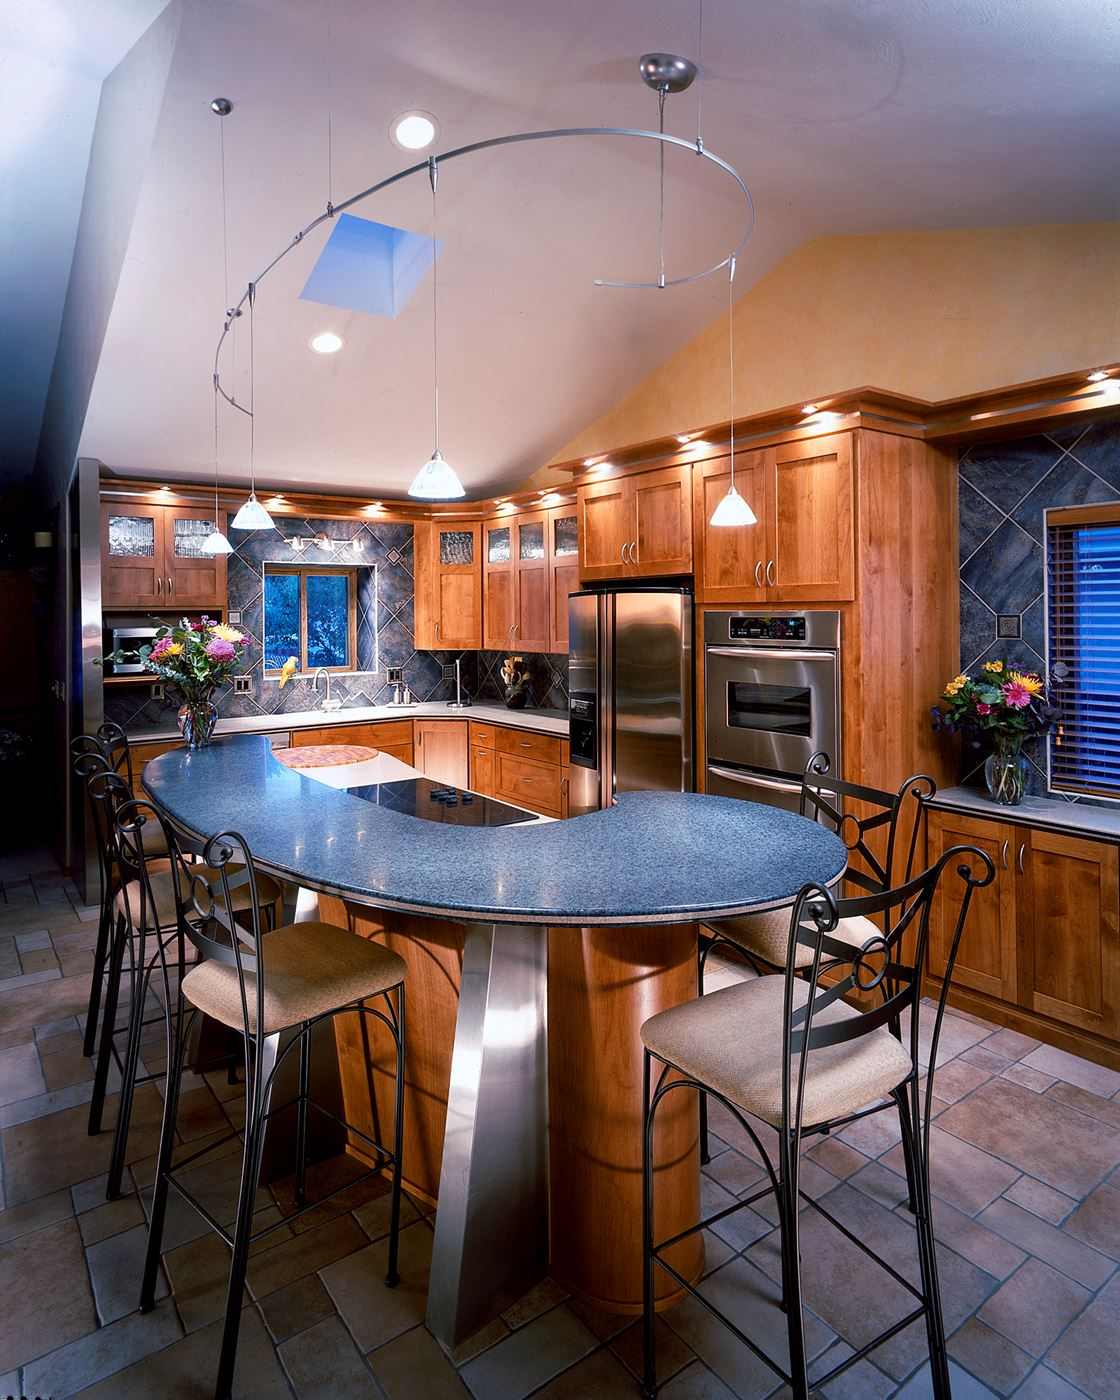 Kitchen Cabinets Colorado Springs: Custom Wood Products